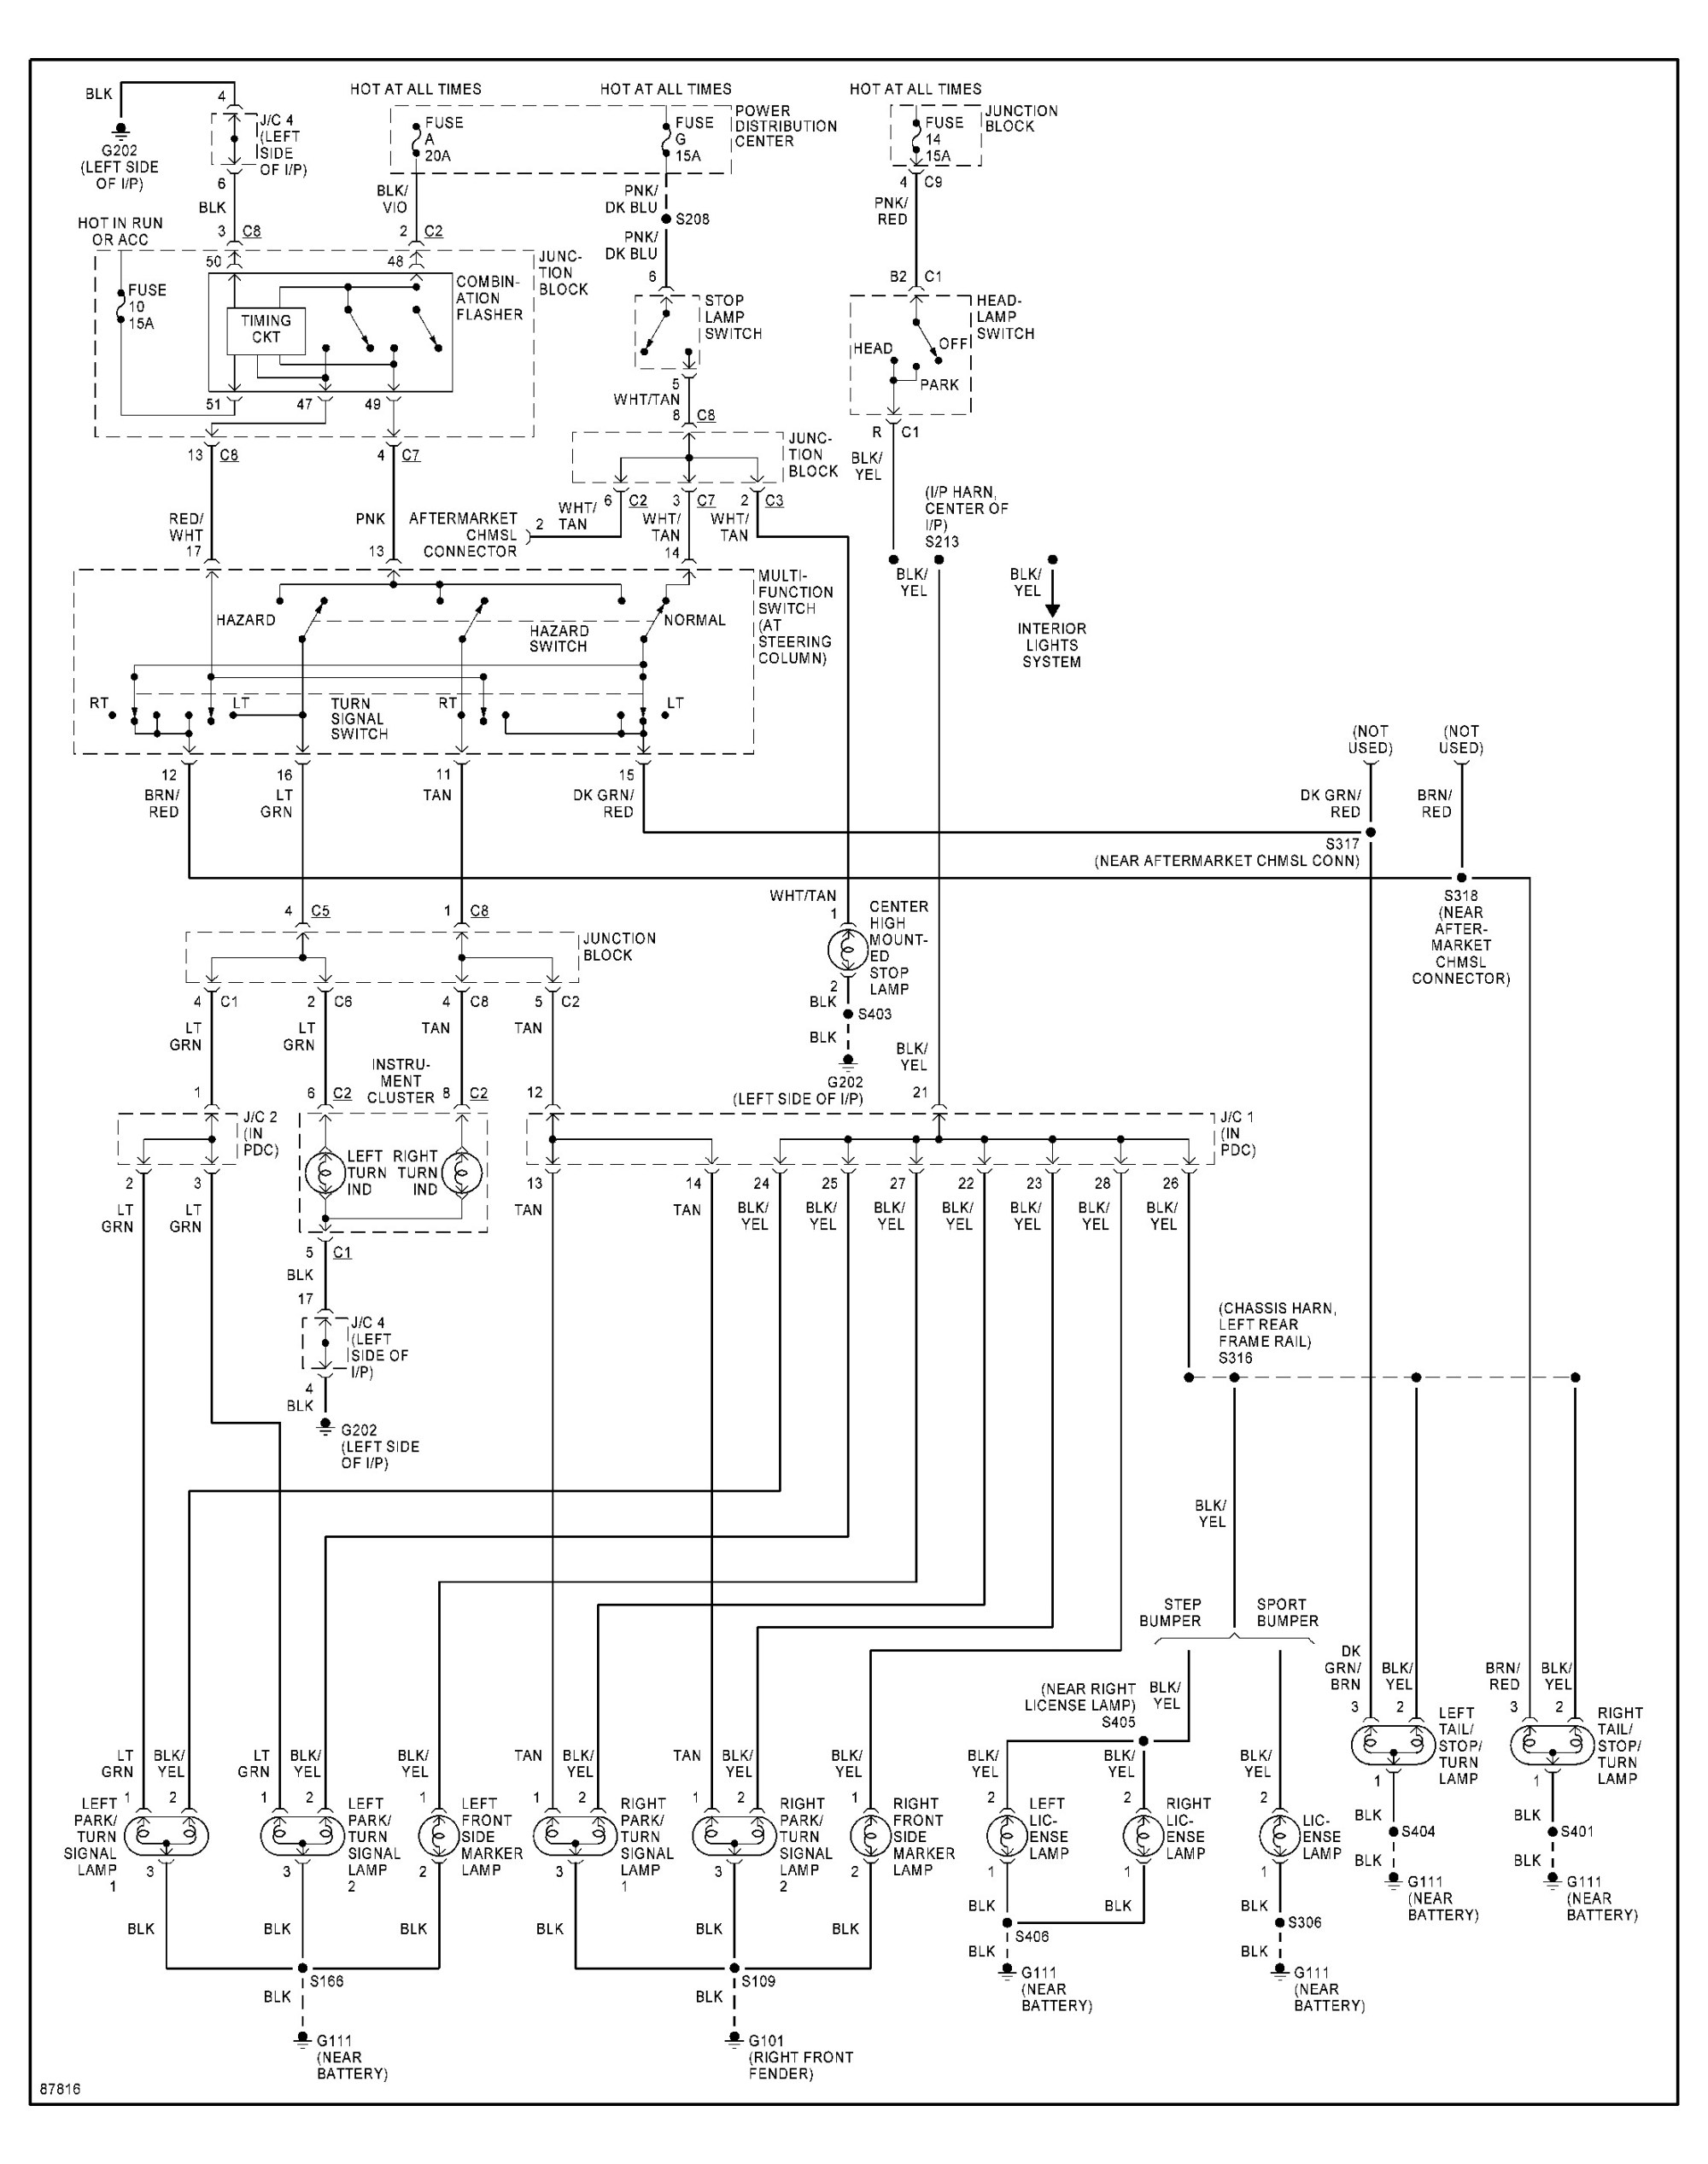 hight resolution of 1999 mercury mystique engine diagram wwwjustanswercom mercury wiring diagram http wwwjustanswercom dodge 5y91z1998dodgedakota